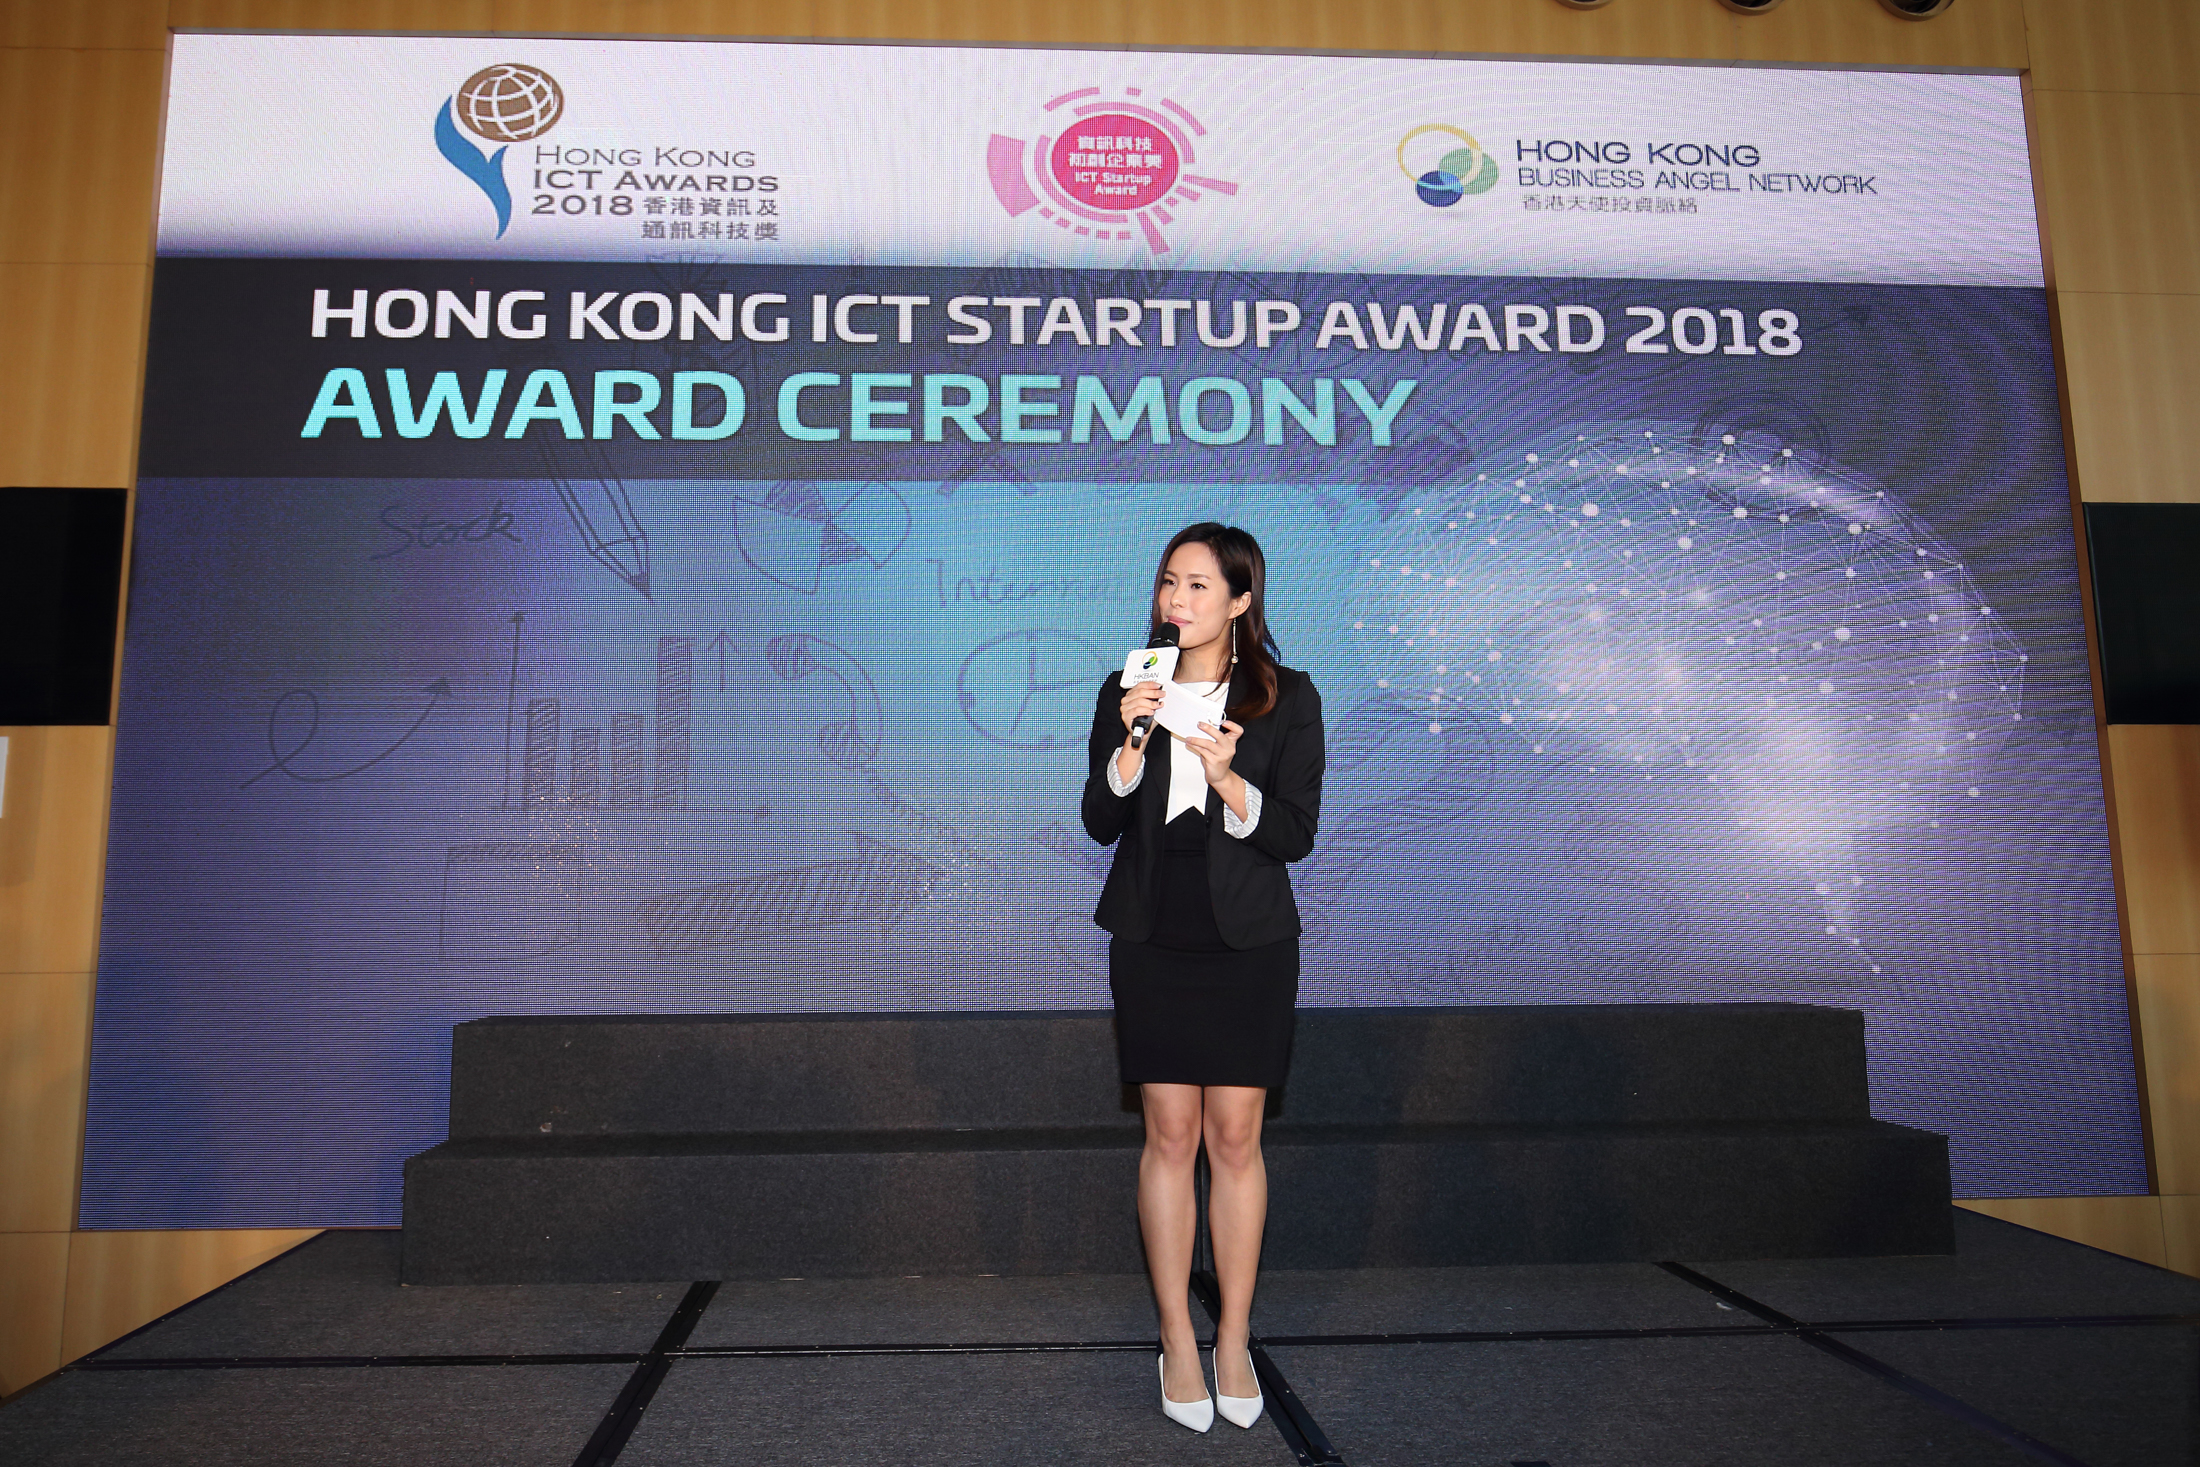 Xaviera Yau司儀工作紀錄: HKICT Start Up Awards Presentation